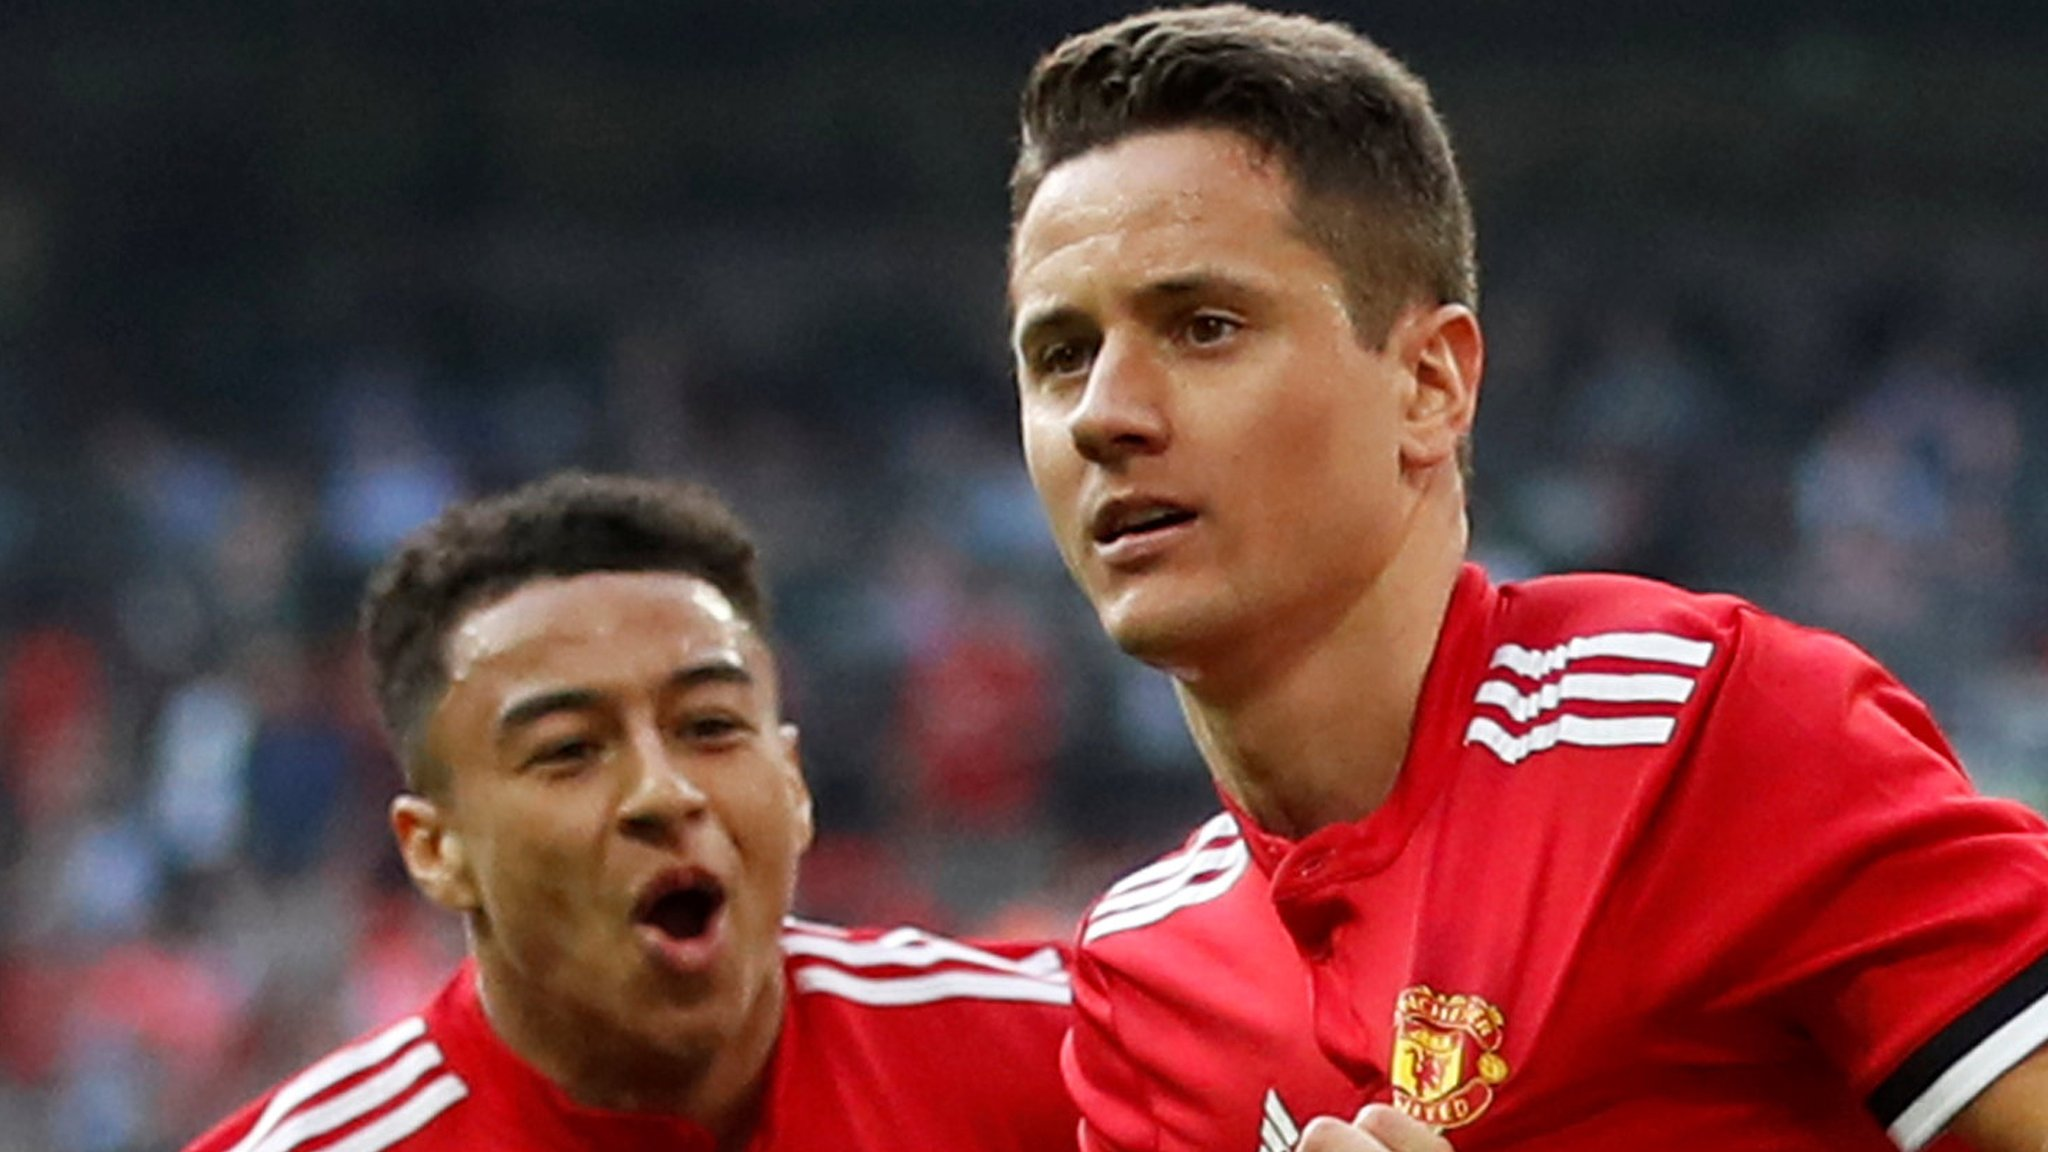 Man Utd reach record-equalling 20th FA Cup final with comeback win over Spurs